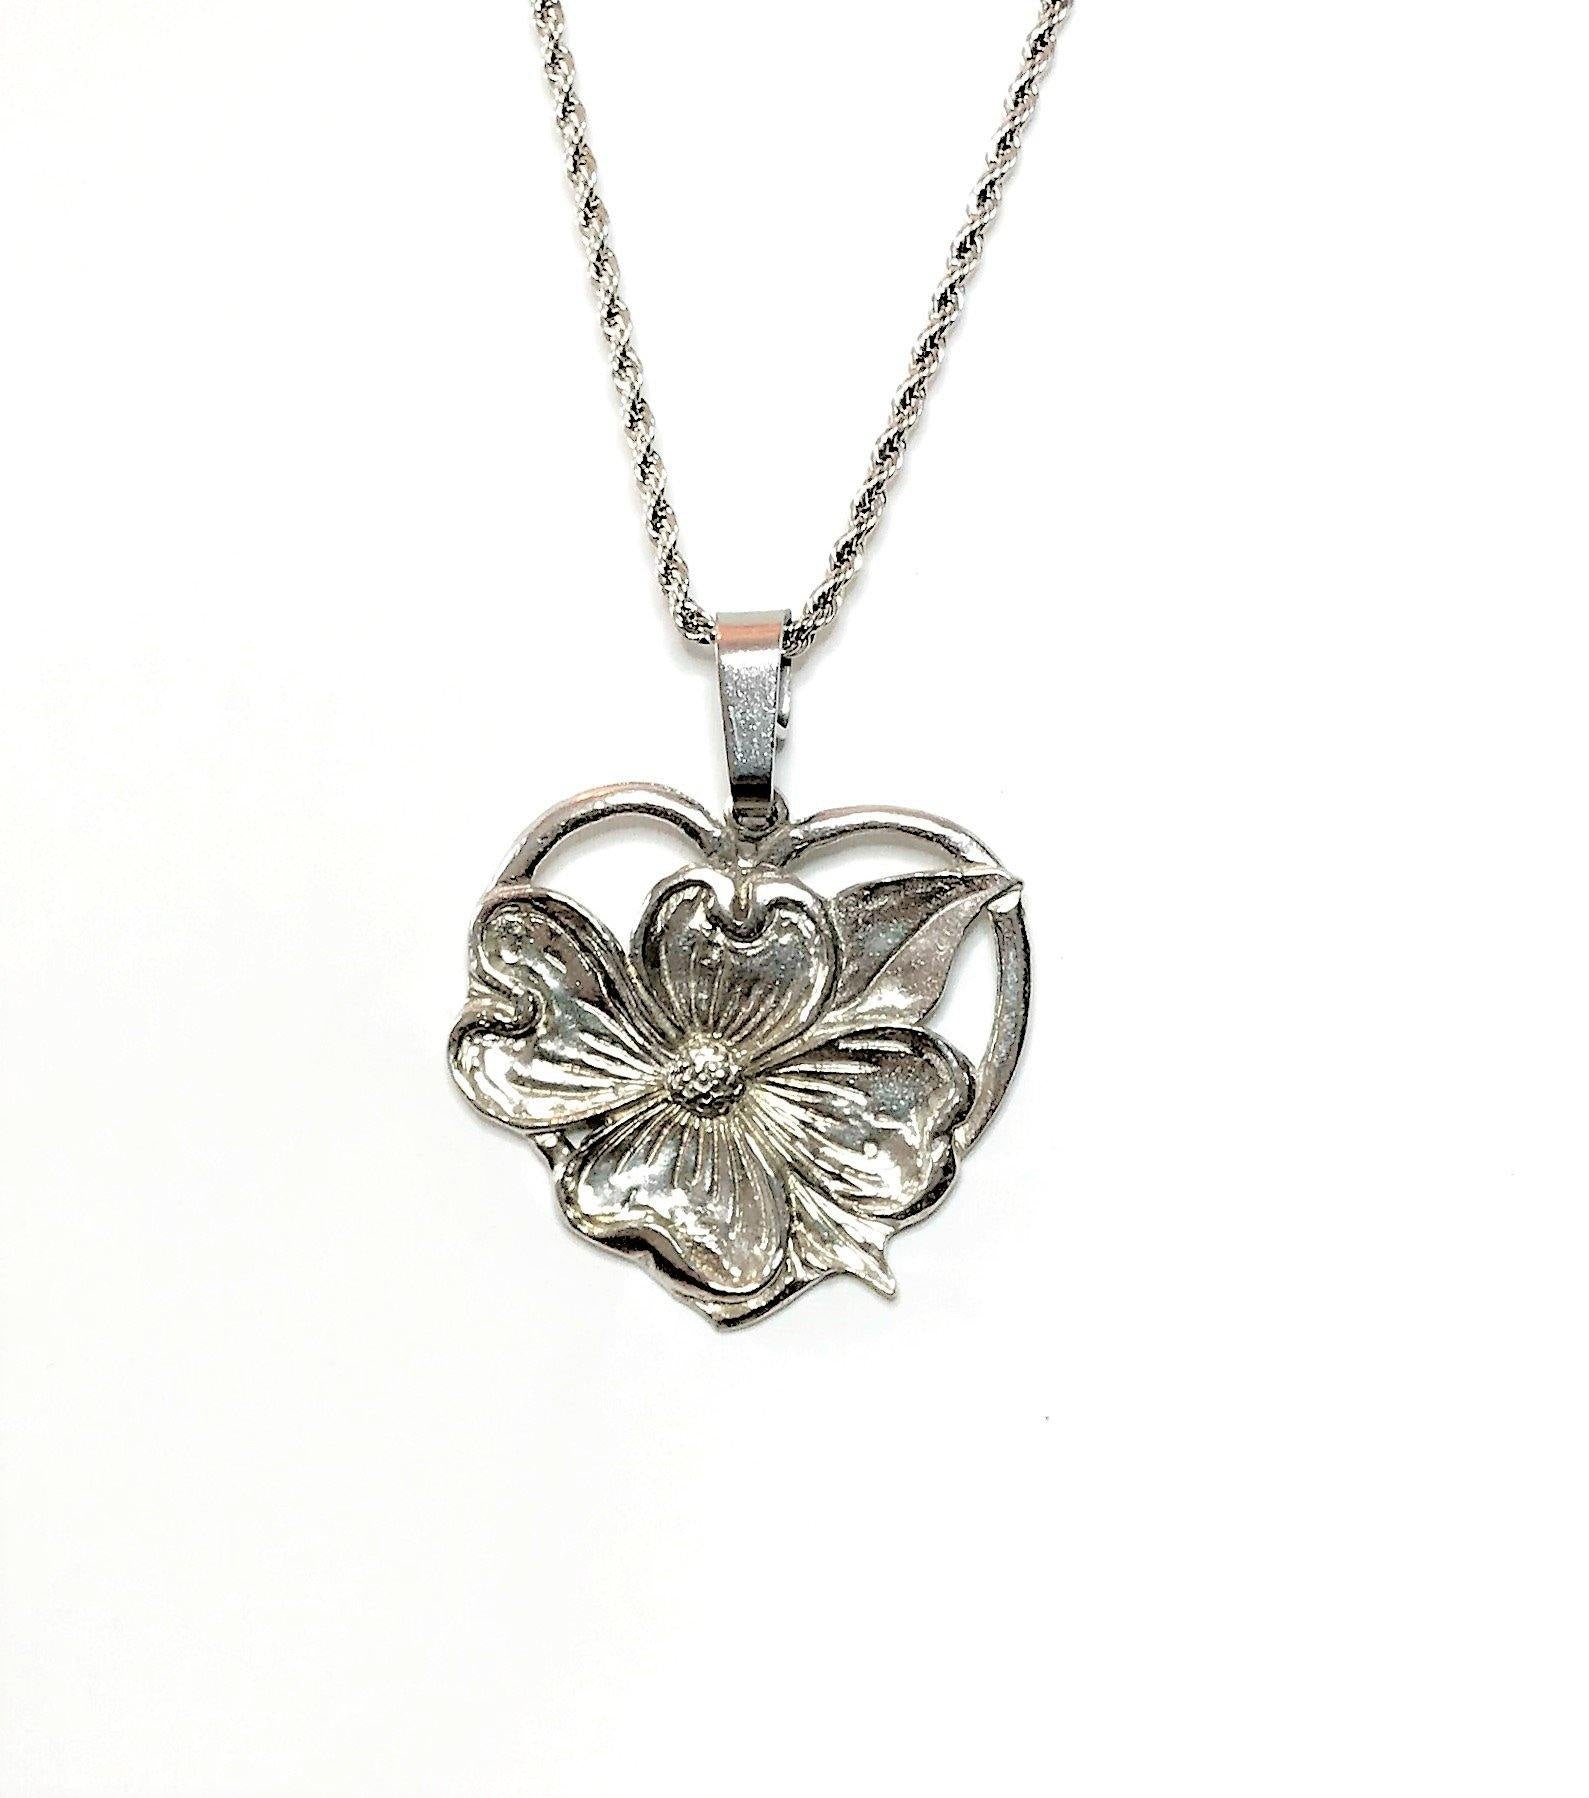 Dogwood Flower Heart Religious Pendant Charm Necklace Jewelry Accessory Pewter Handmade - House of Morgan Pewter